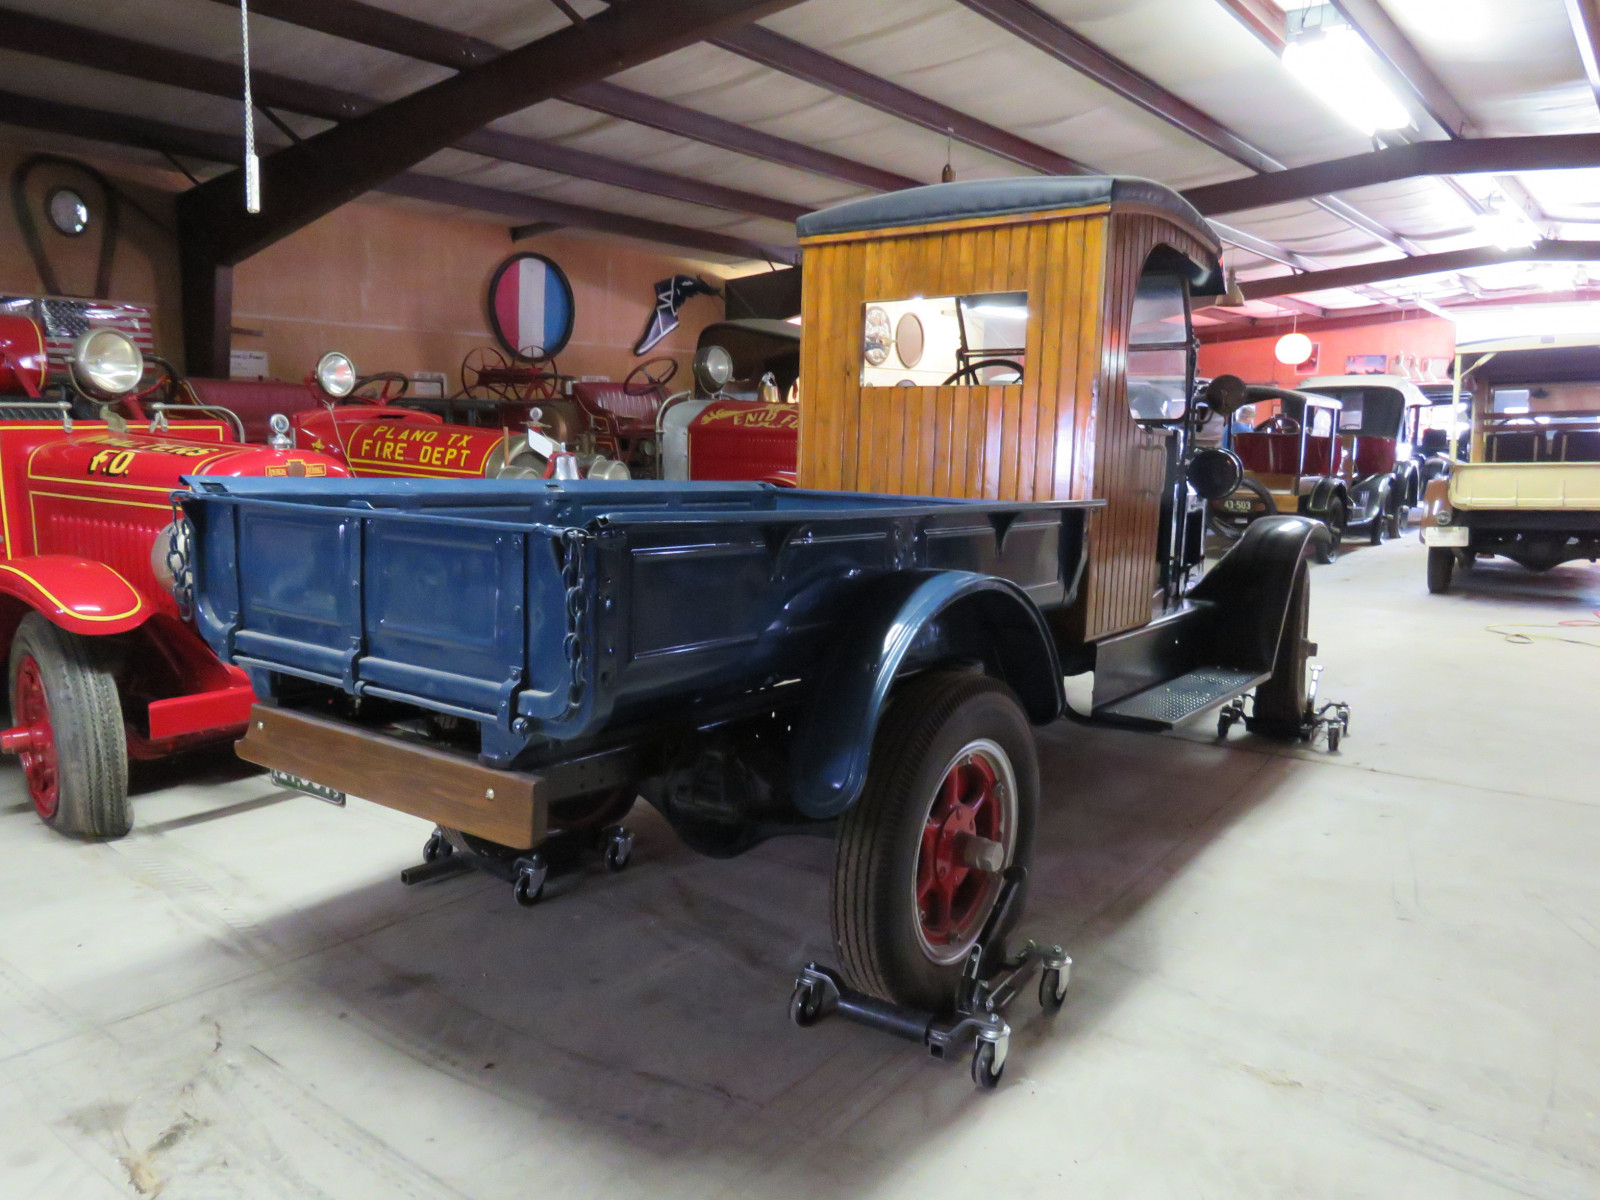 1925 International Model S 1 1/2 ton Express Truck - Image 6